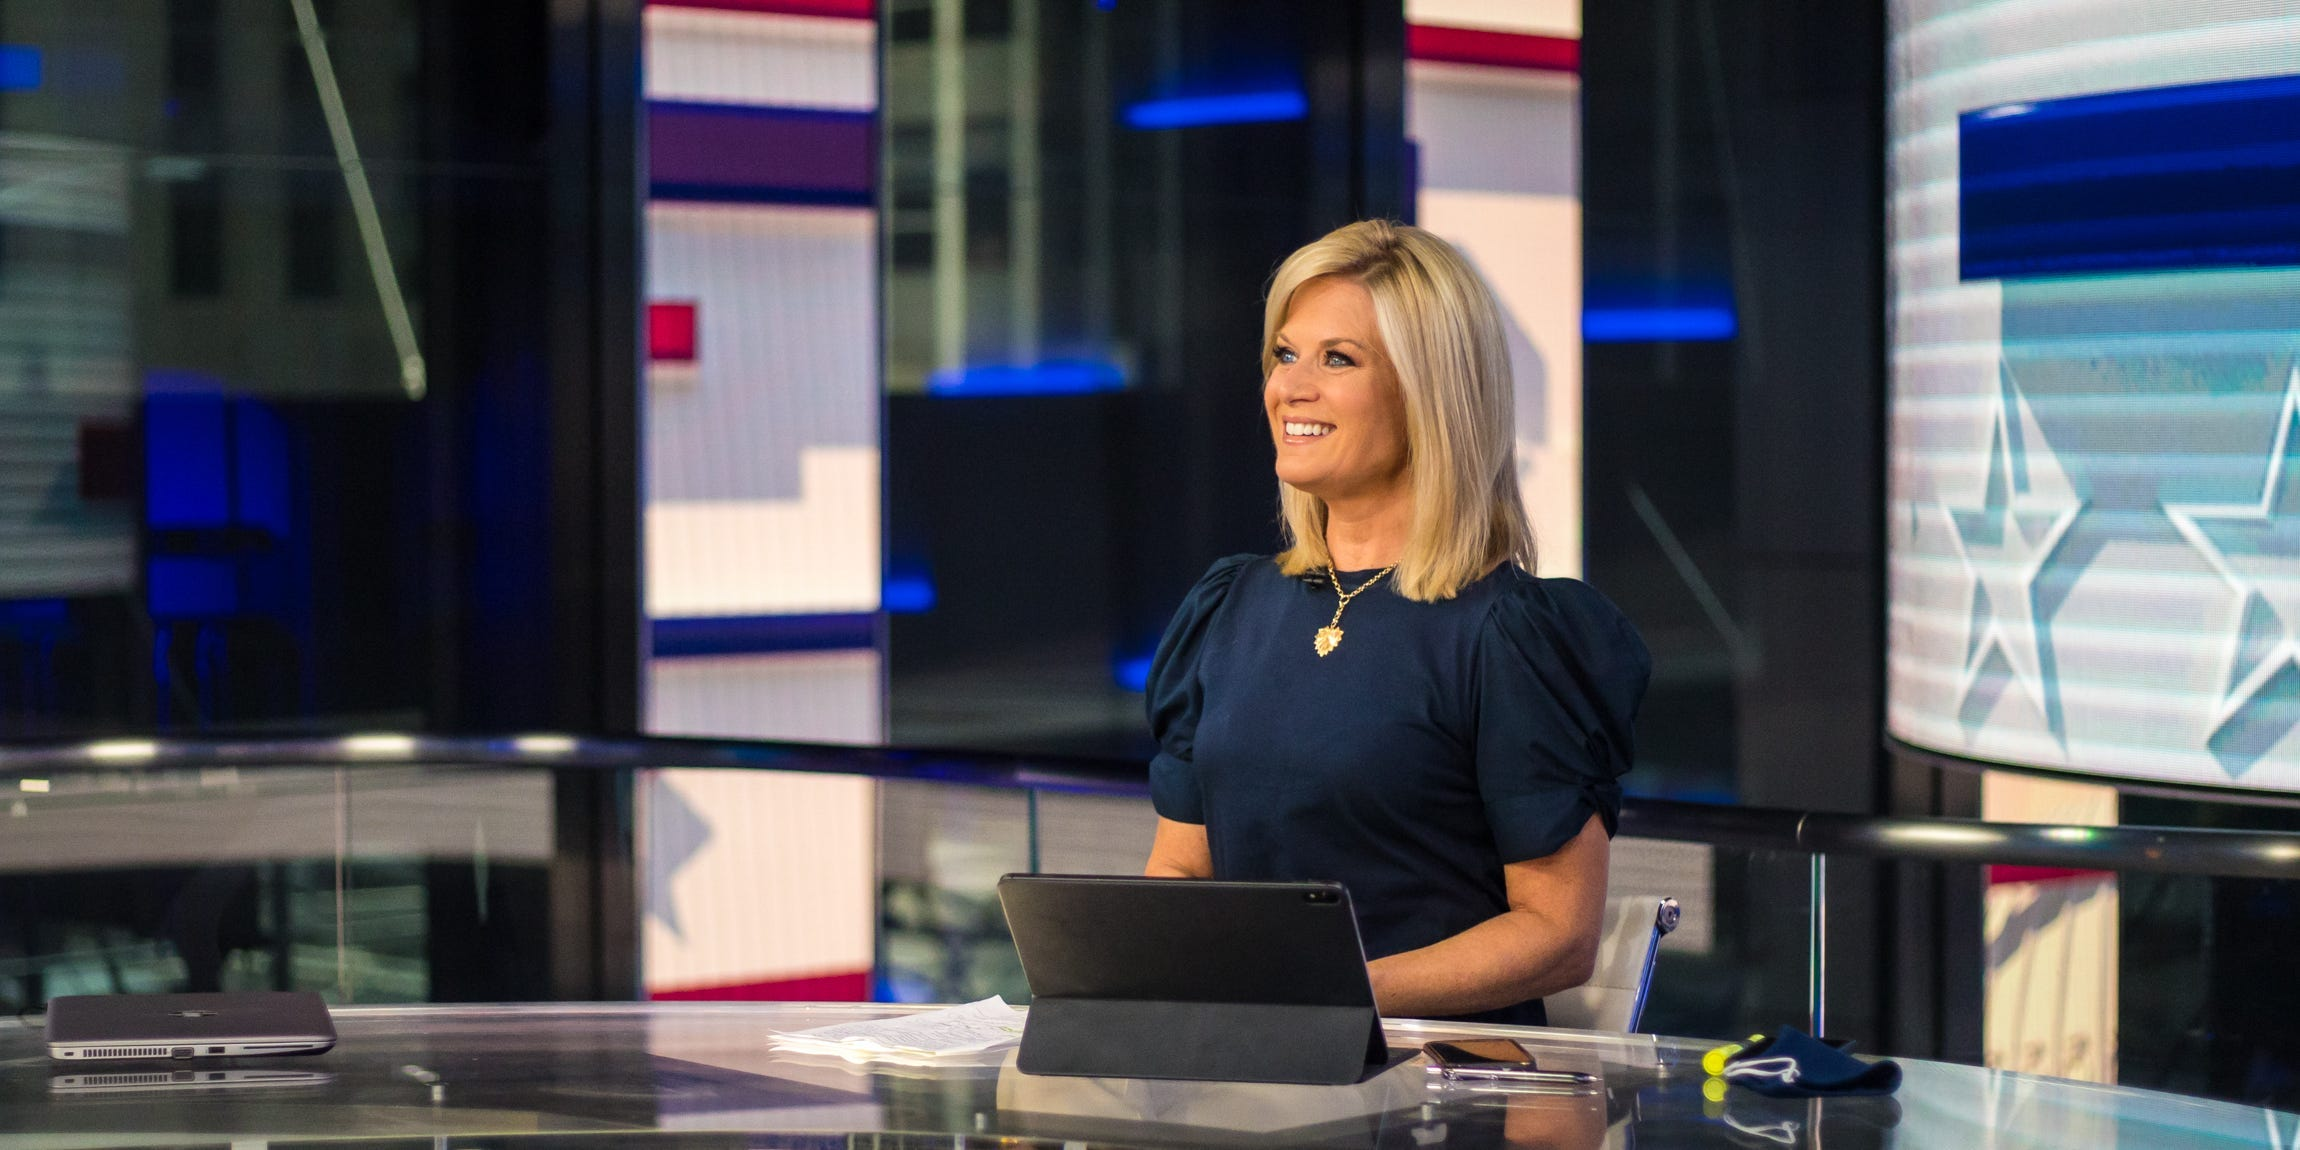 Fox News anchor Martha MacCallum on her daily routine and how she balances her personal life with being on TV every day